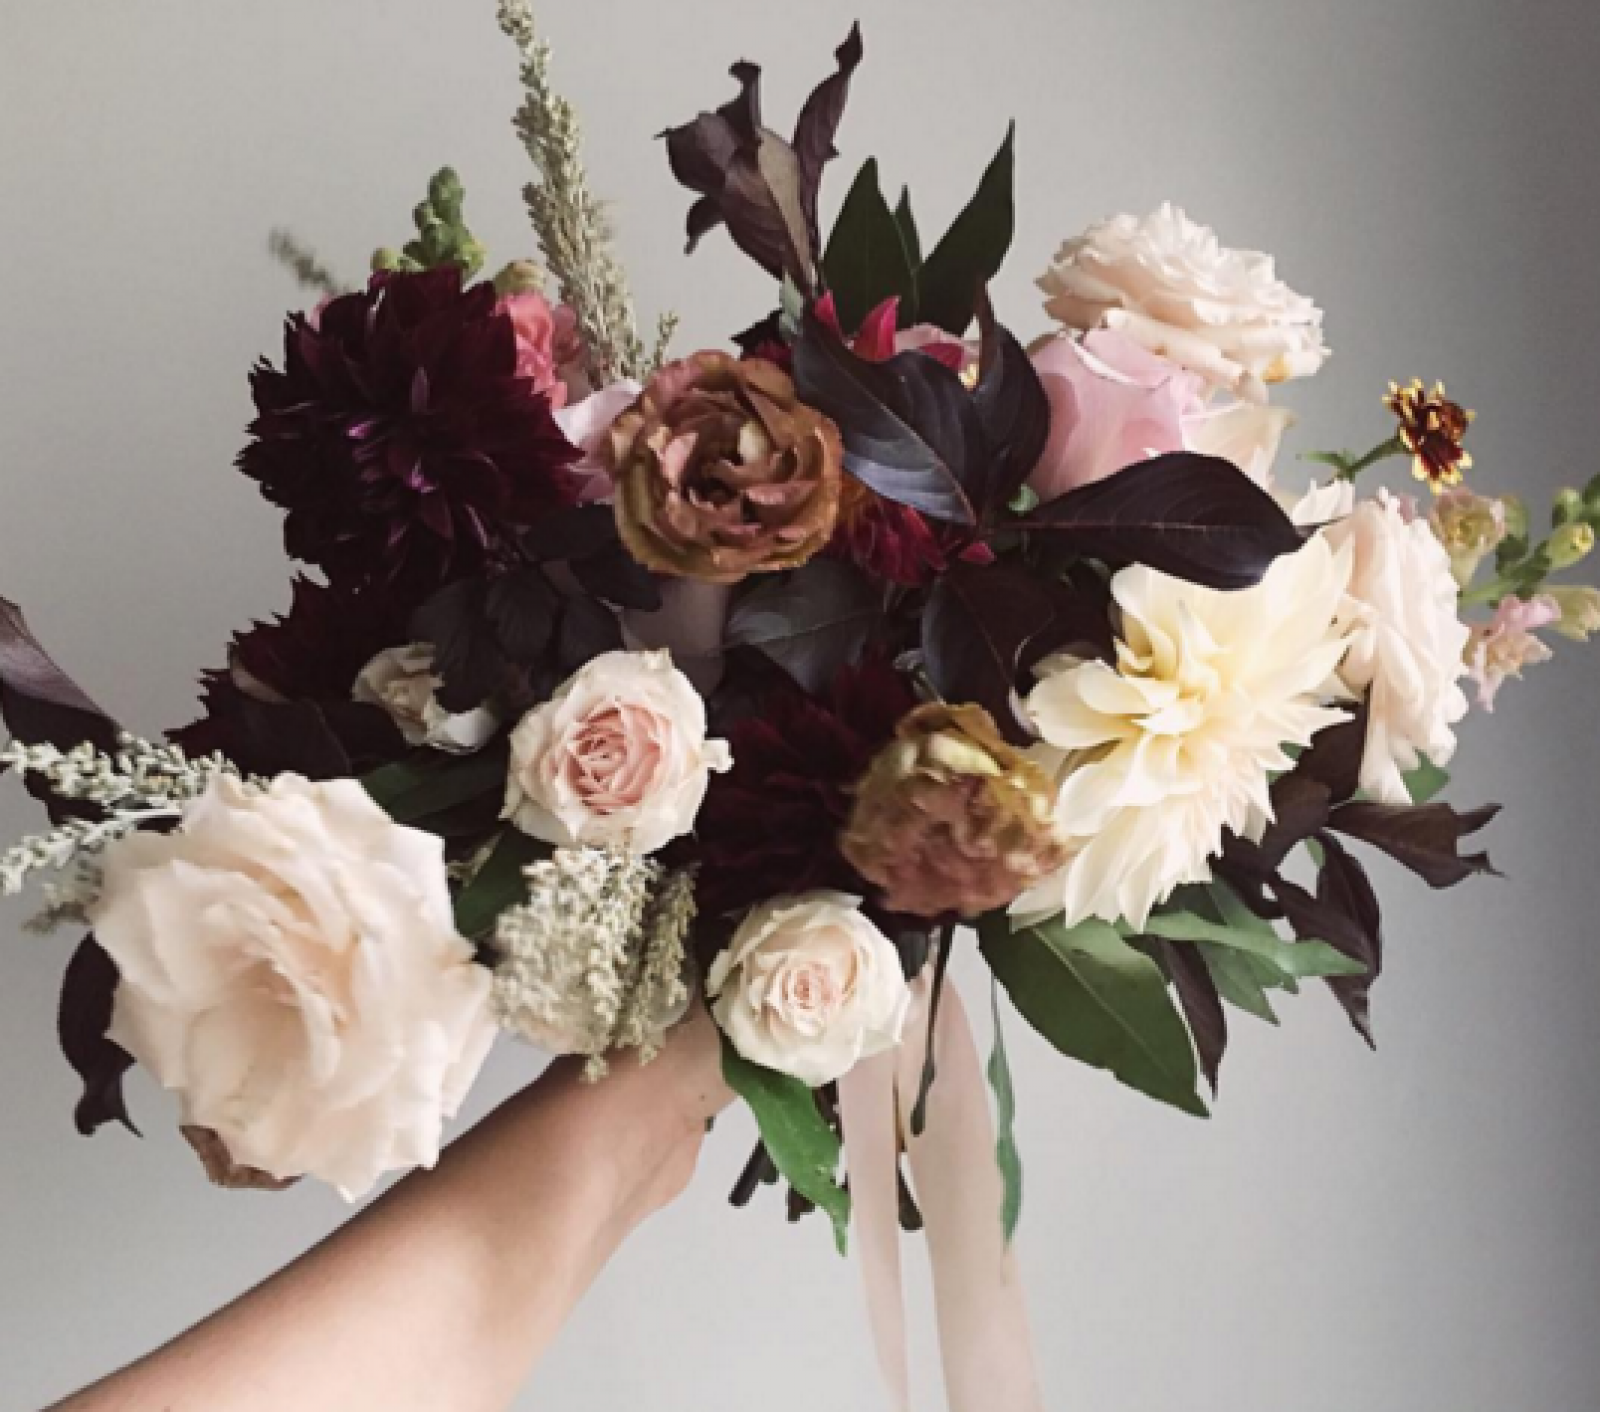 Pinterest Fall Wedding Flowers: Our Favorite Instagram Posts 10.28